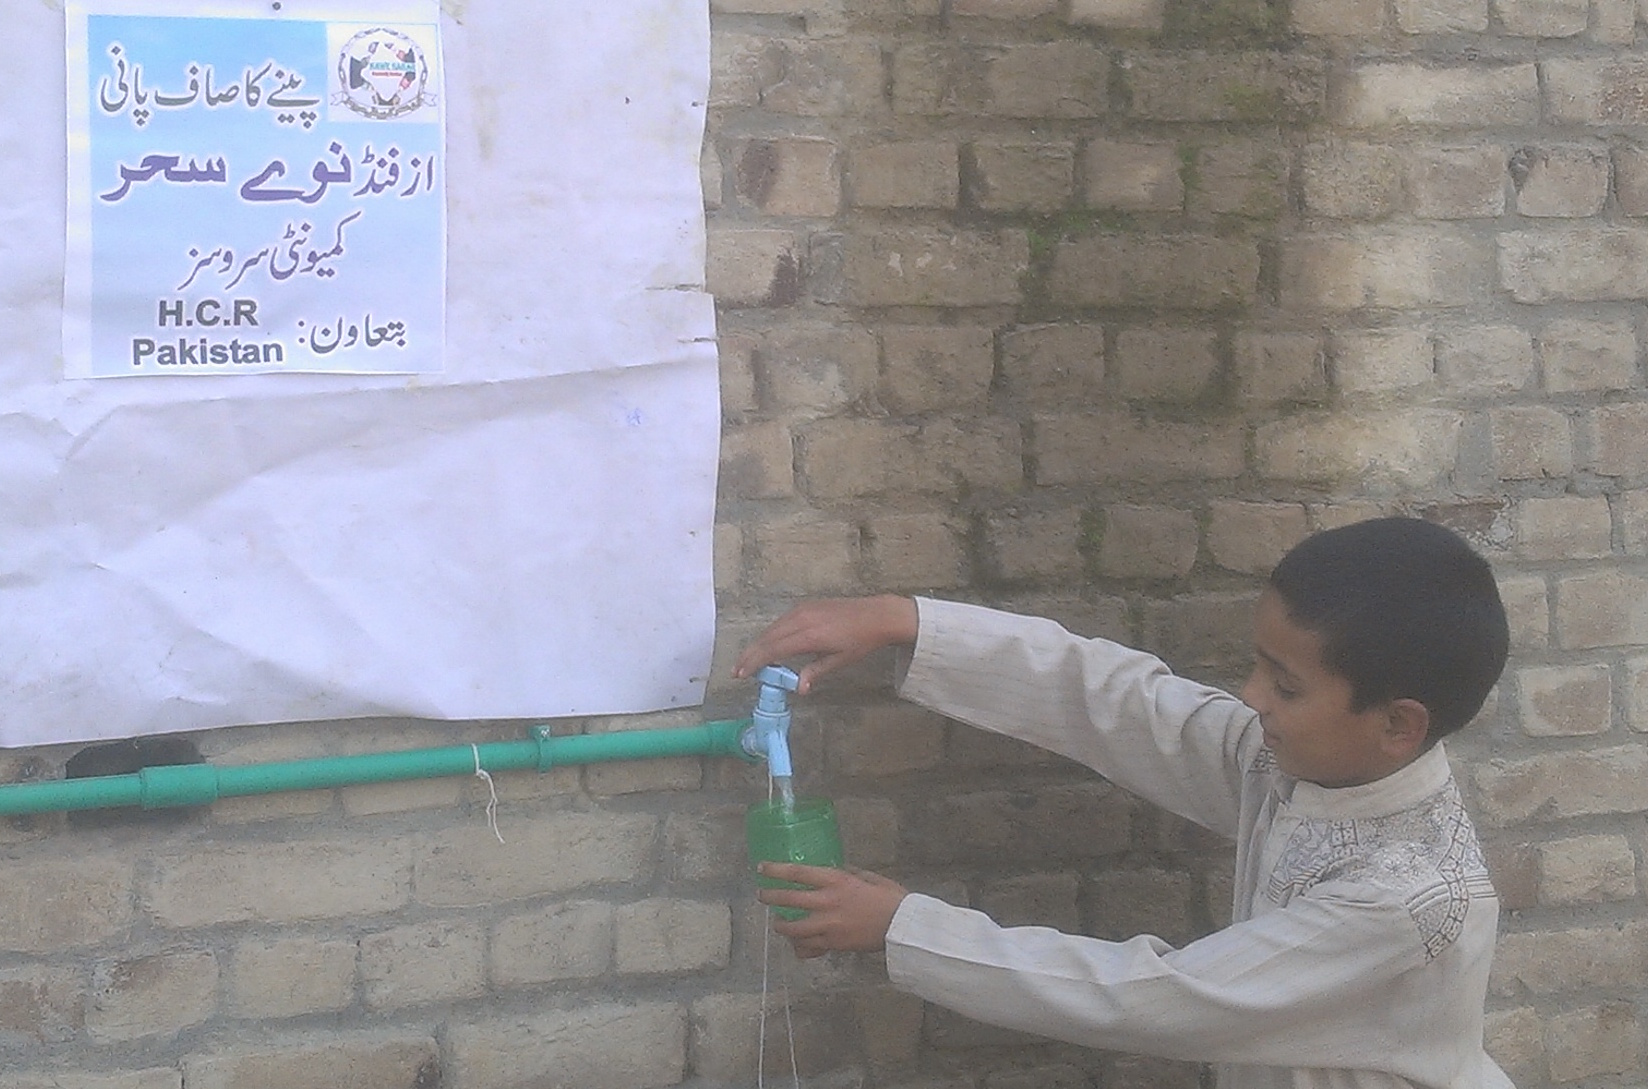 Schoolboy tries the clean drinking water from the new well in his village, KPK province, Pakistan